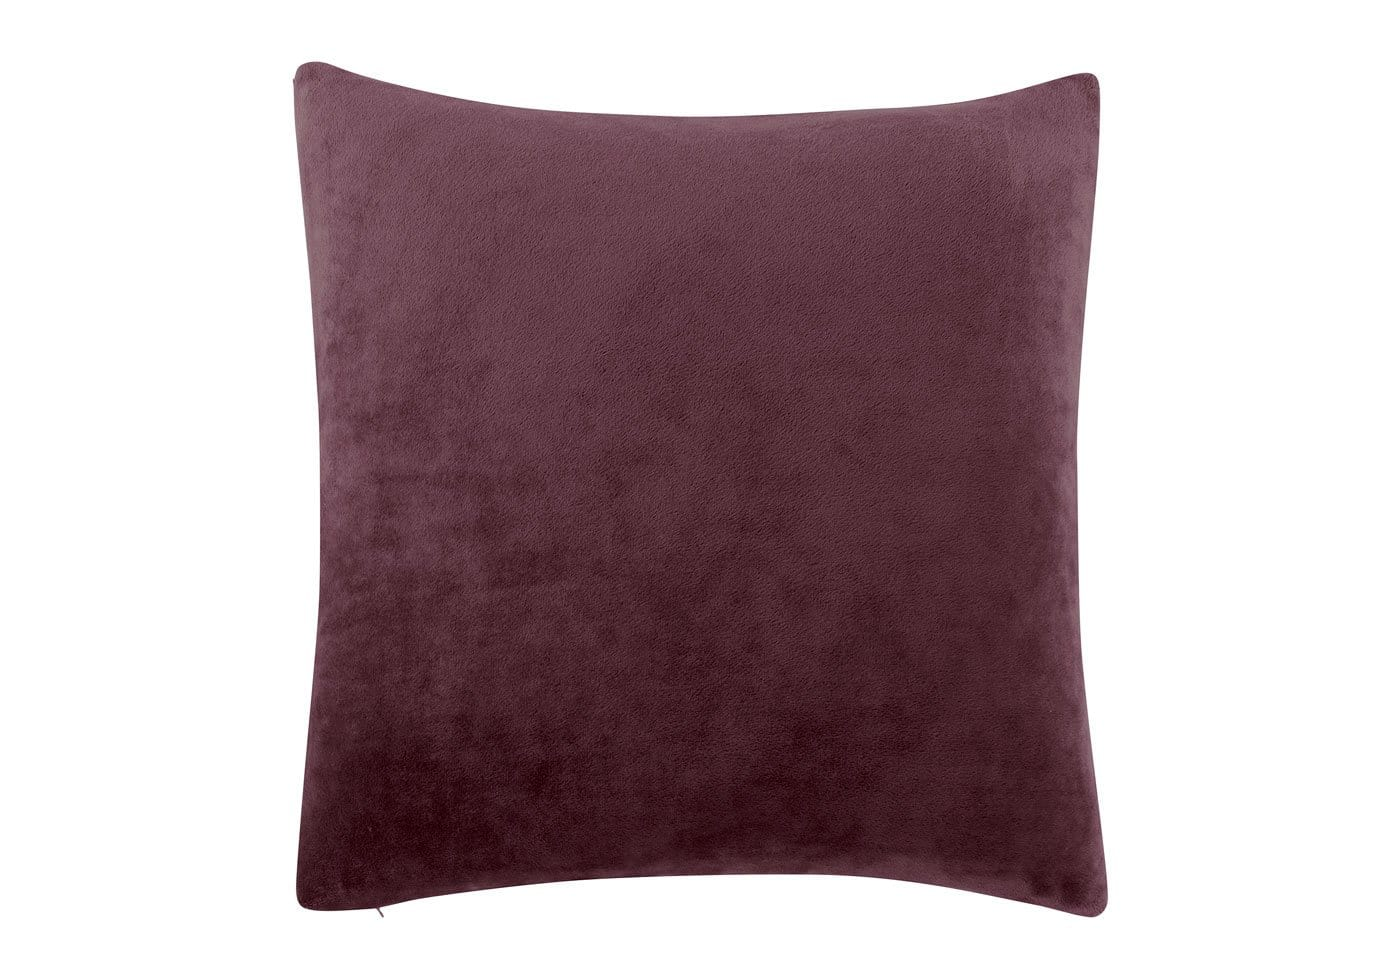 Stretch Plush 18 Inch Square Pillow Cover - 18 x 18 / Mulberry